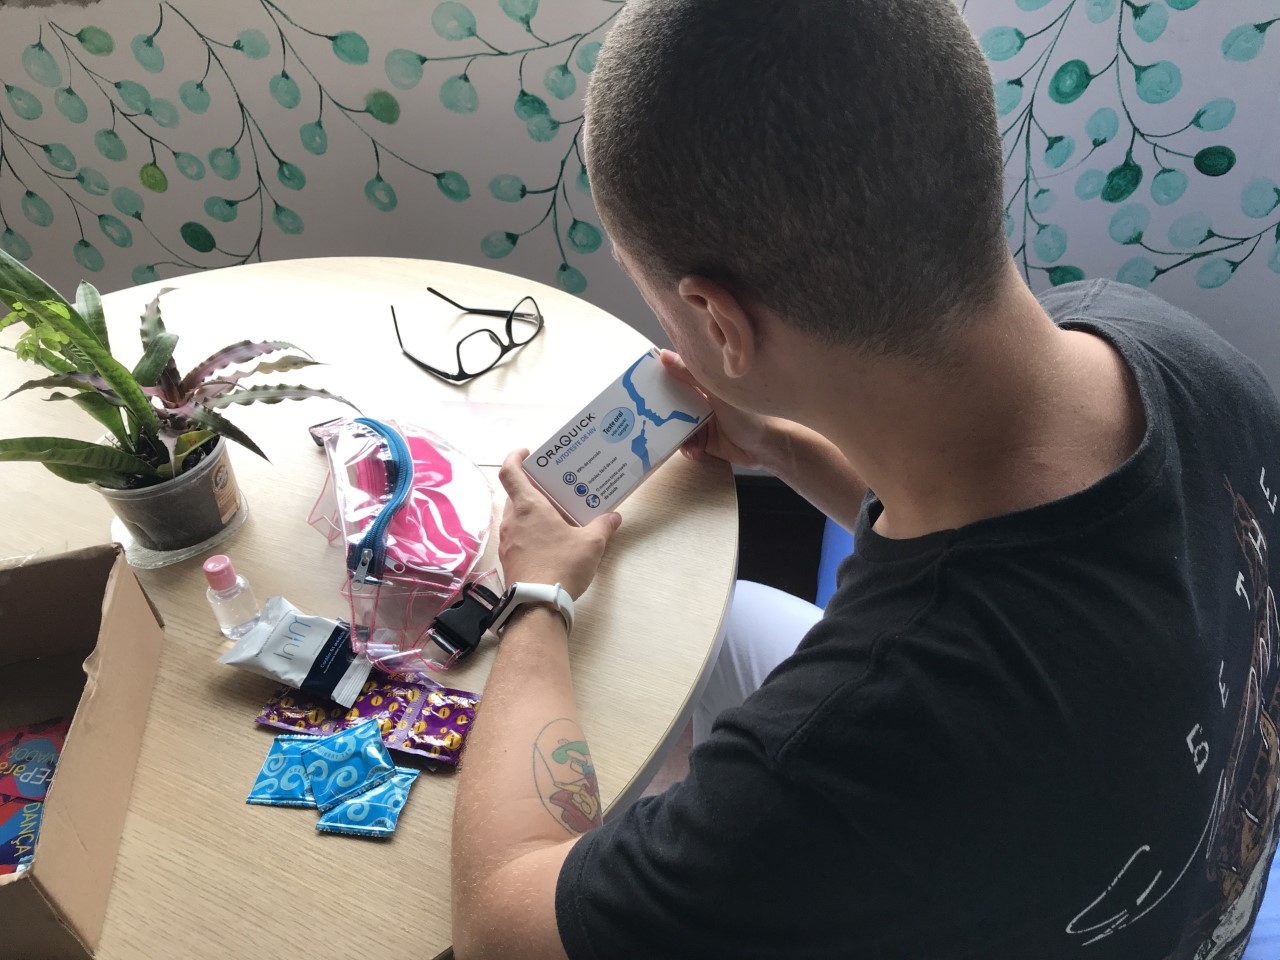 A PrEP1519 participant receives a home-based HIV prevention kit during COVID-19 lockdown.